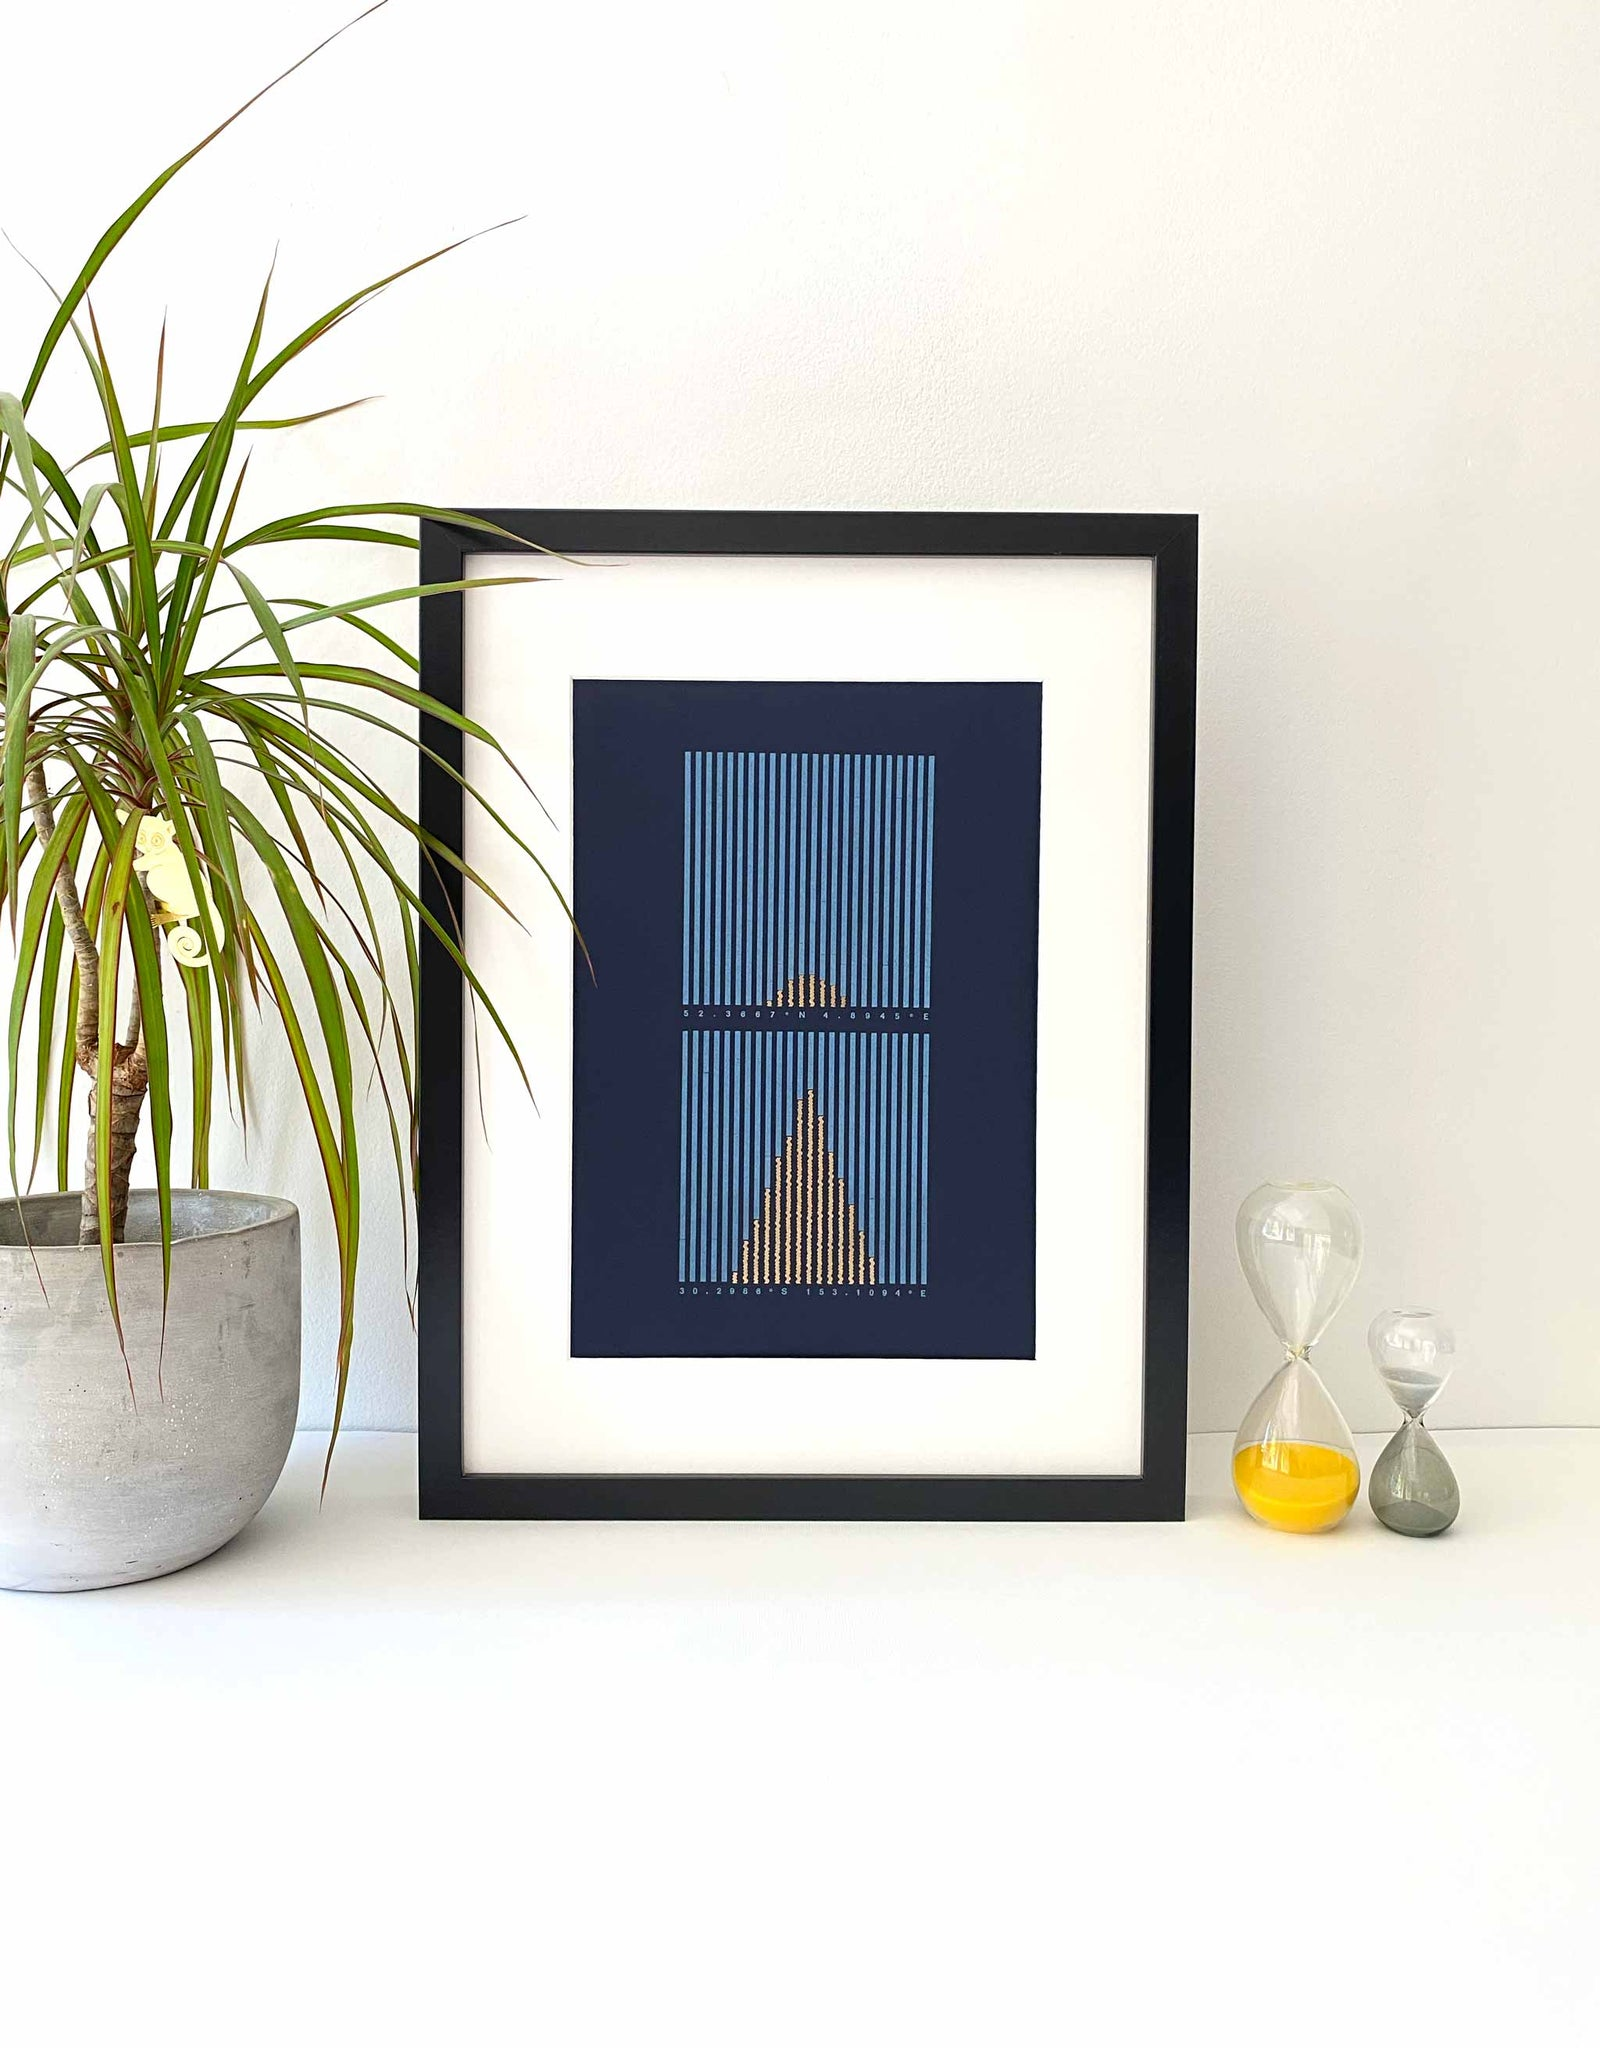 Framed Letterpress data print Sunlight Hours. Light blue and gold vertical lines on dark blue background. Lifestyle image with plant and props.